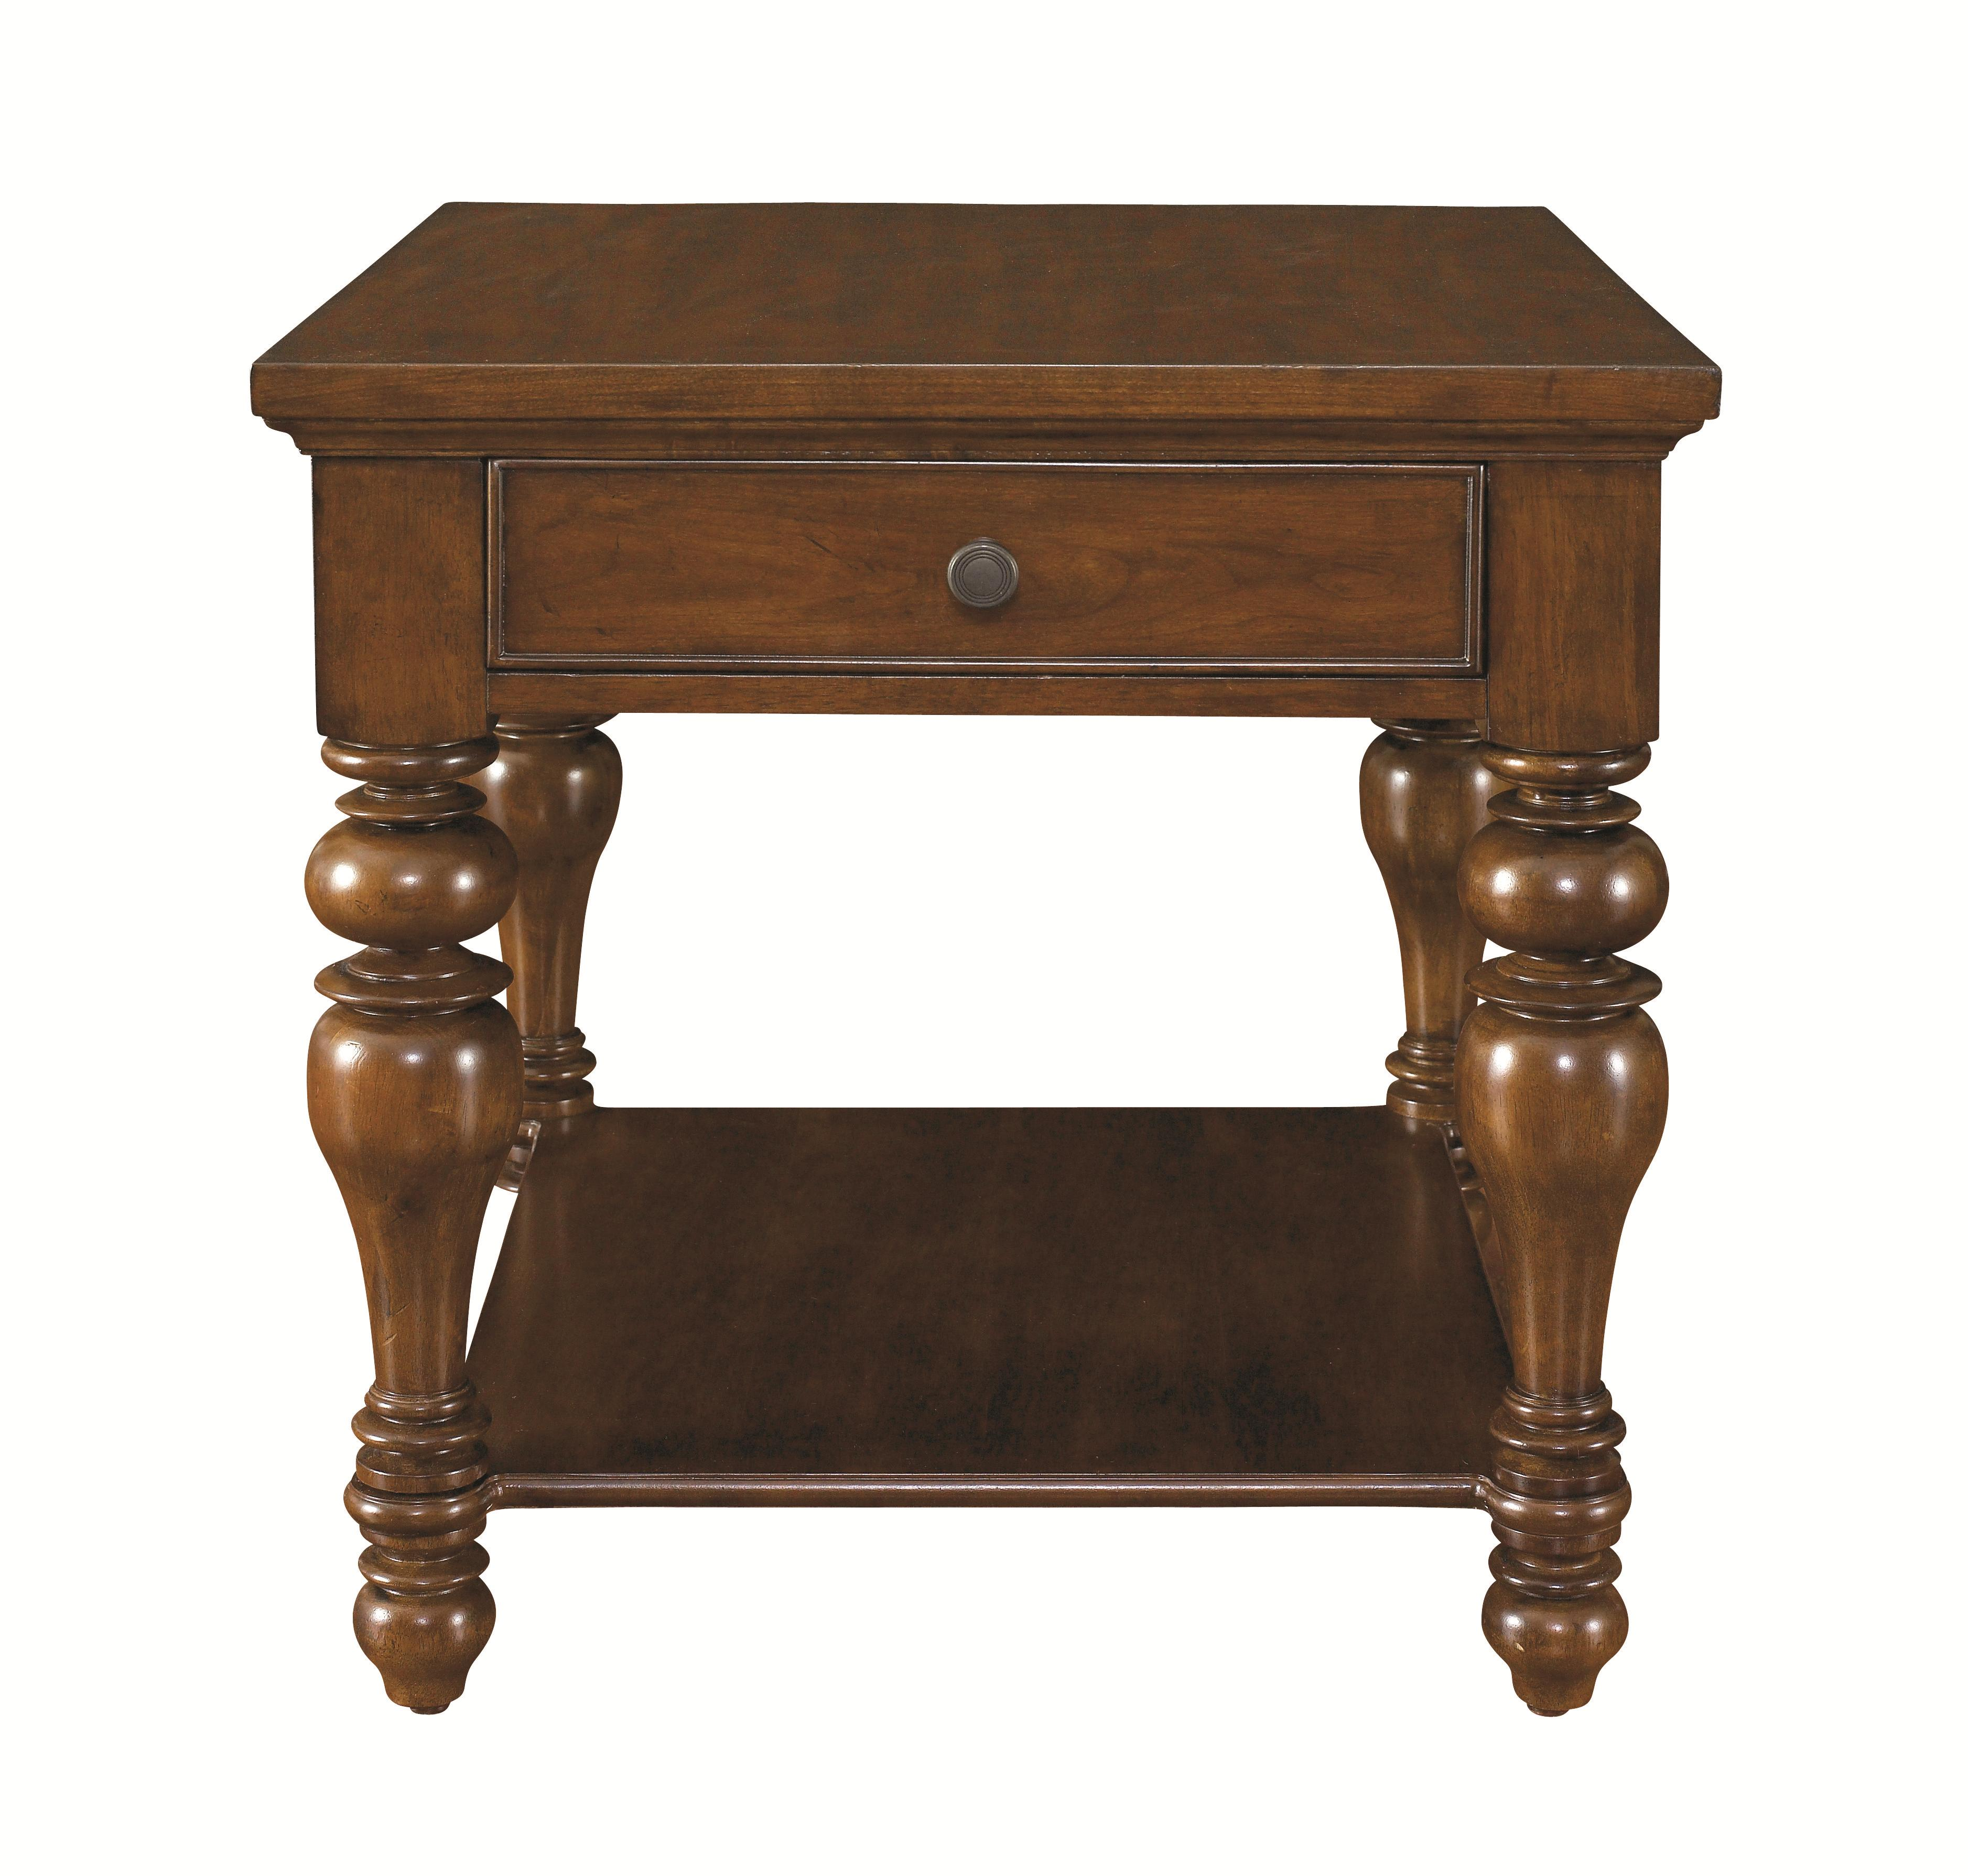 Bassett Warrenton Square End Table With 1 Drawer   AHFA   End Table Dealer  Locator